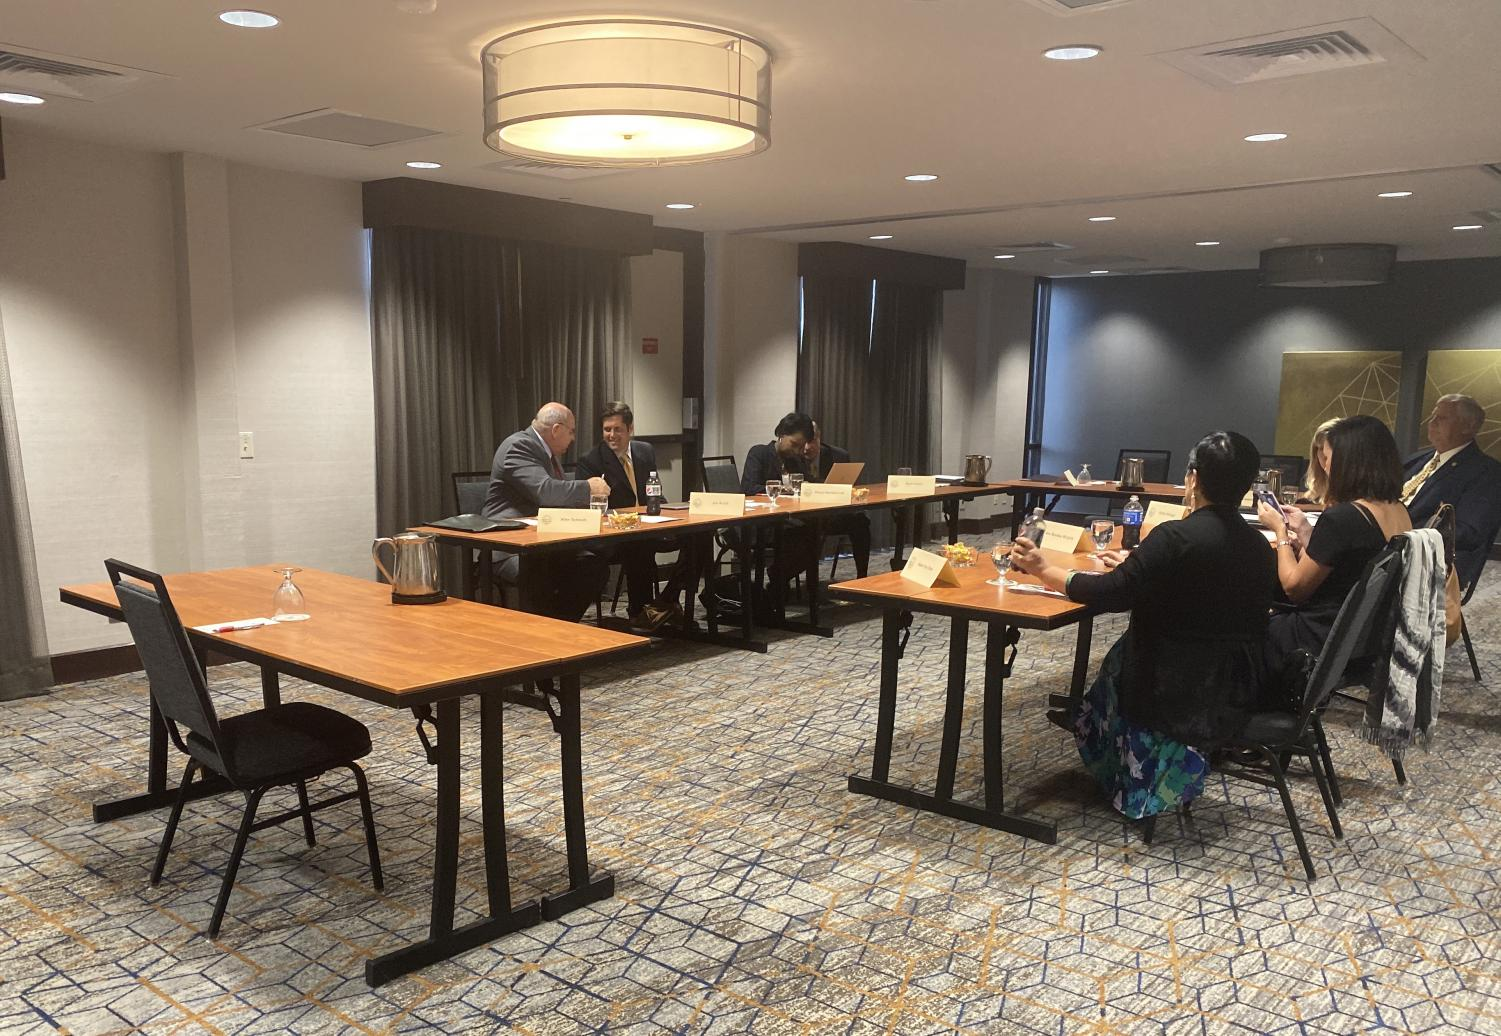 Members of the Kansas Board of Regents congregate before they interview finalists for the next Wichita State president. The interviews are being held at a Marriott Hotel at the Kansas City Airport.